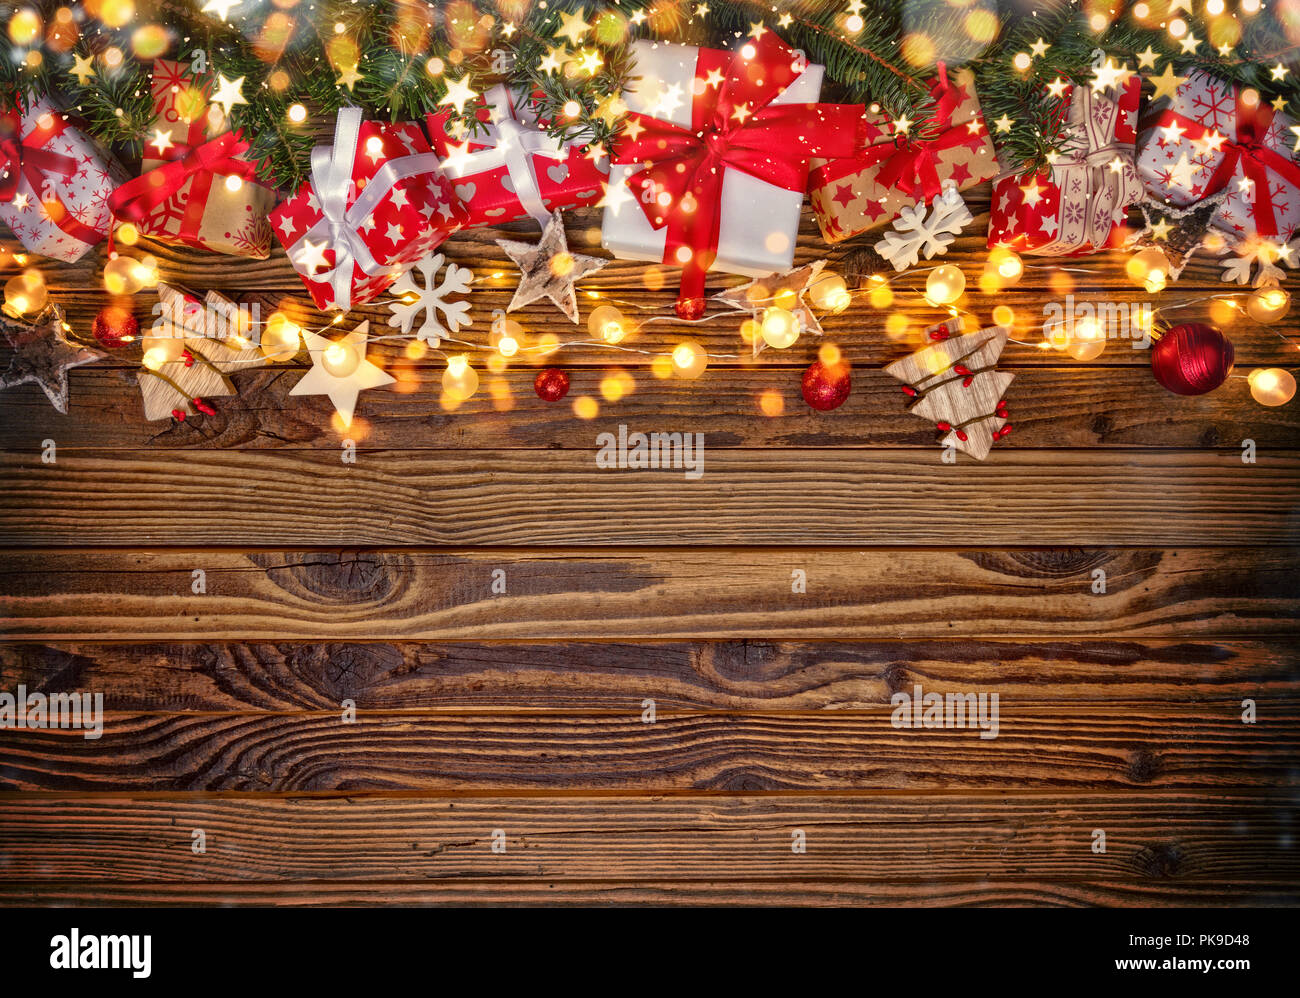 Decorative Christmas Rustic Background With Wooden Planks